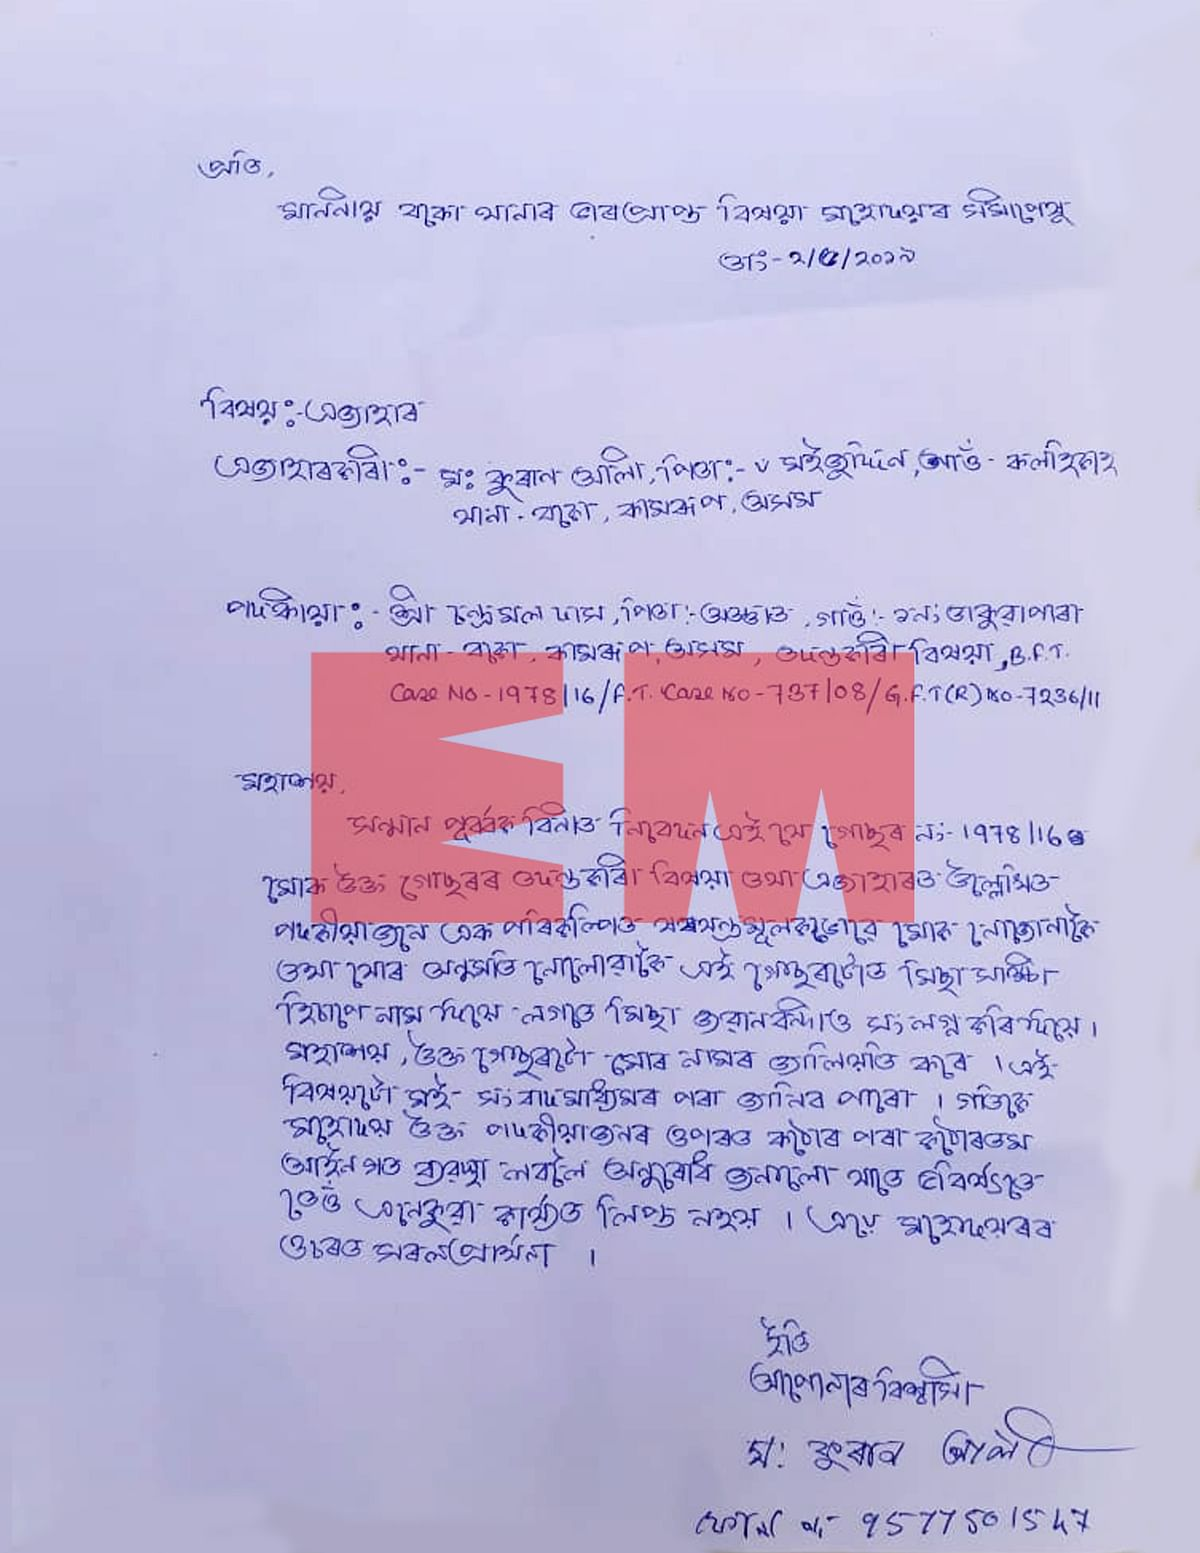 The FIR filed by Md Kuran Ali against the then SI of border police, Chandramal Das